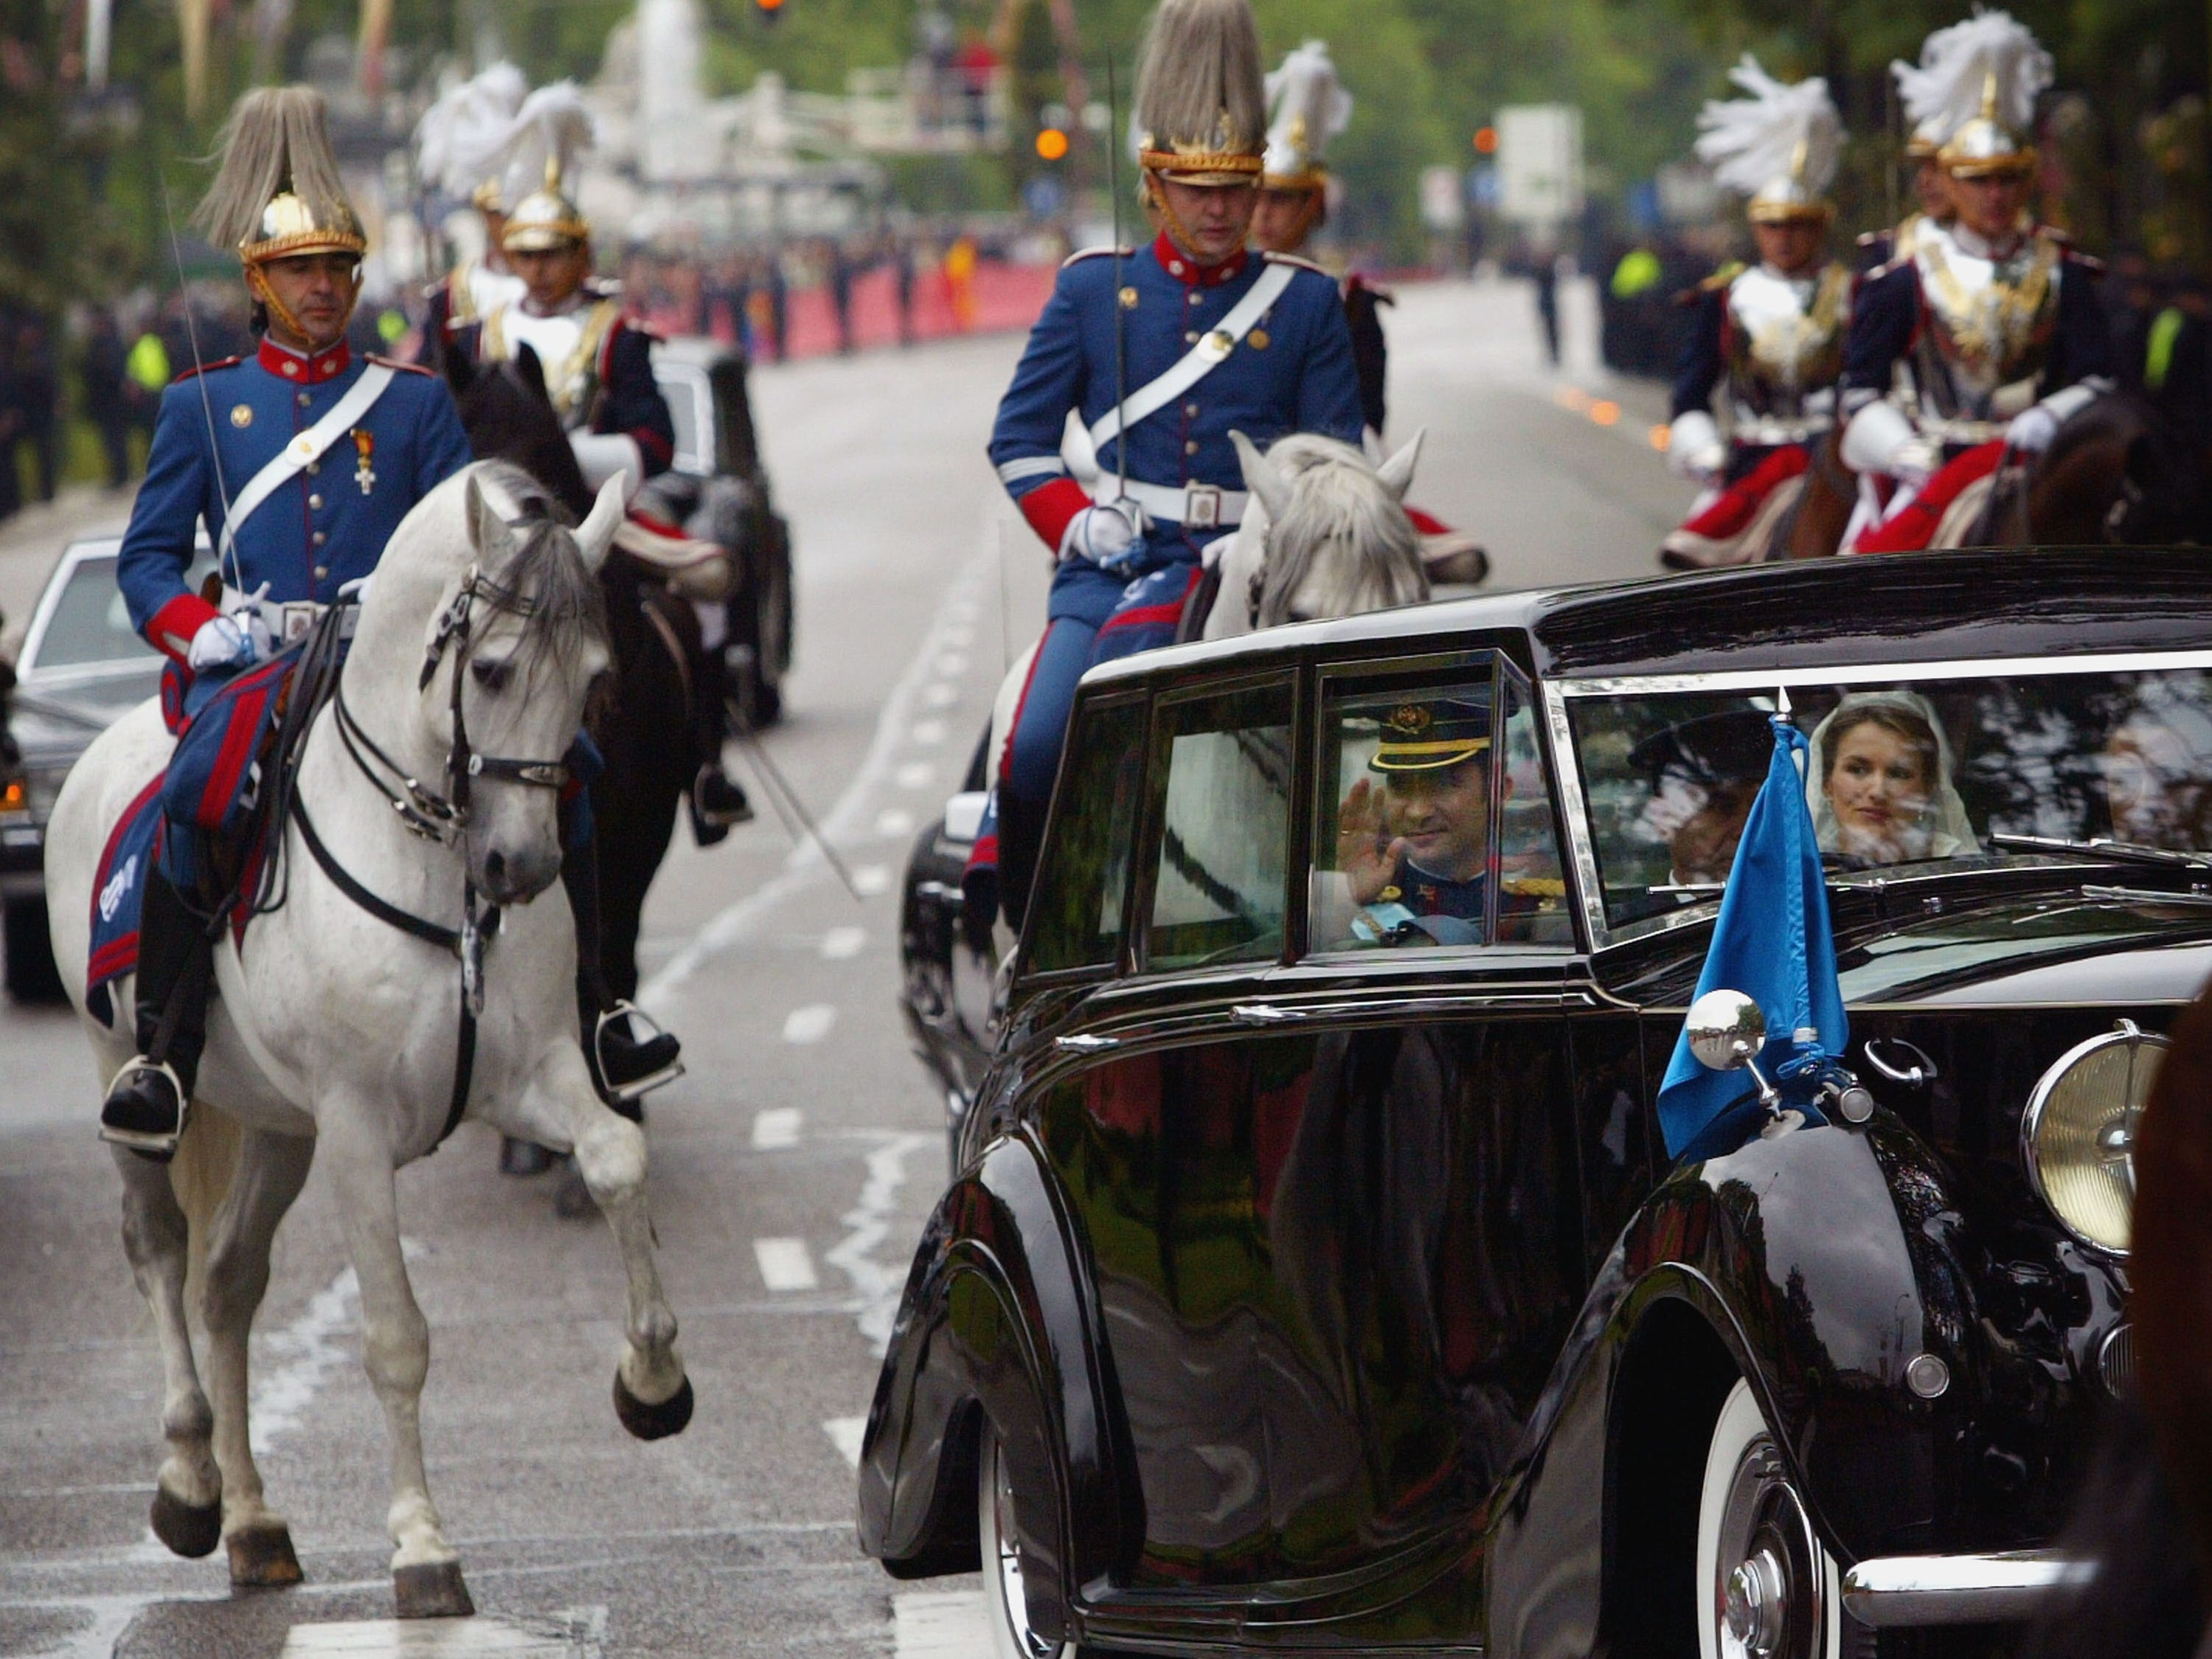 Spain's Crown Prince Felipe de Bourbon and his bride Letizia Ortiz wave from their limousine after their wedding ceremony May 22, 2004 in Madrid.